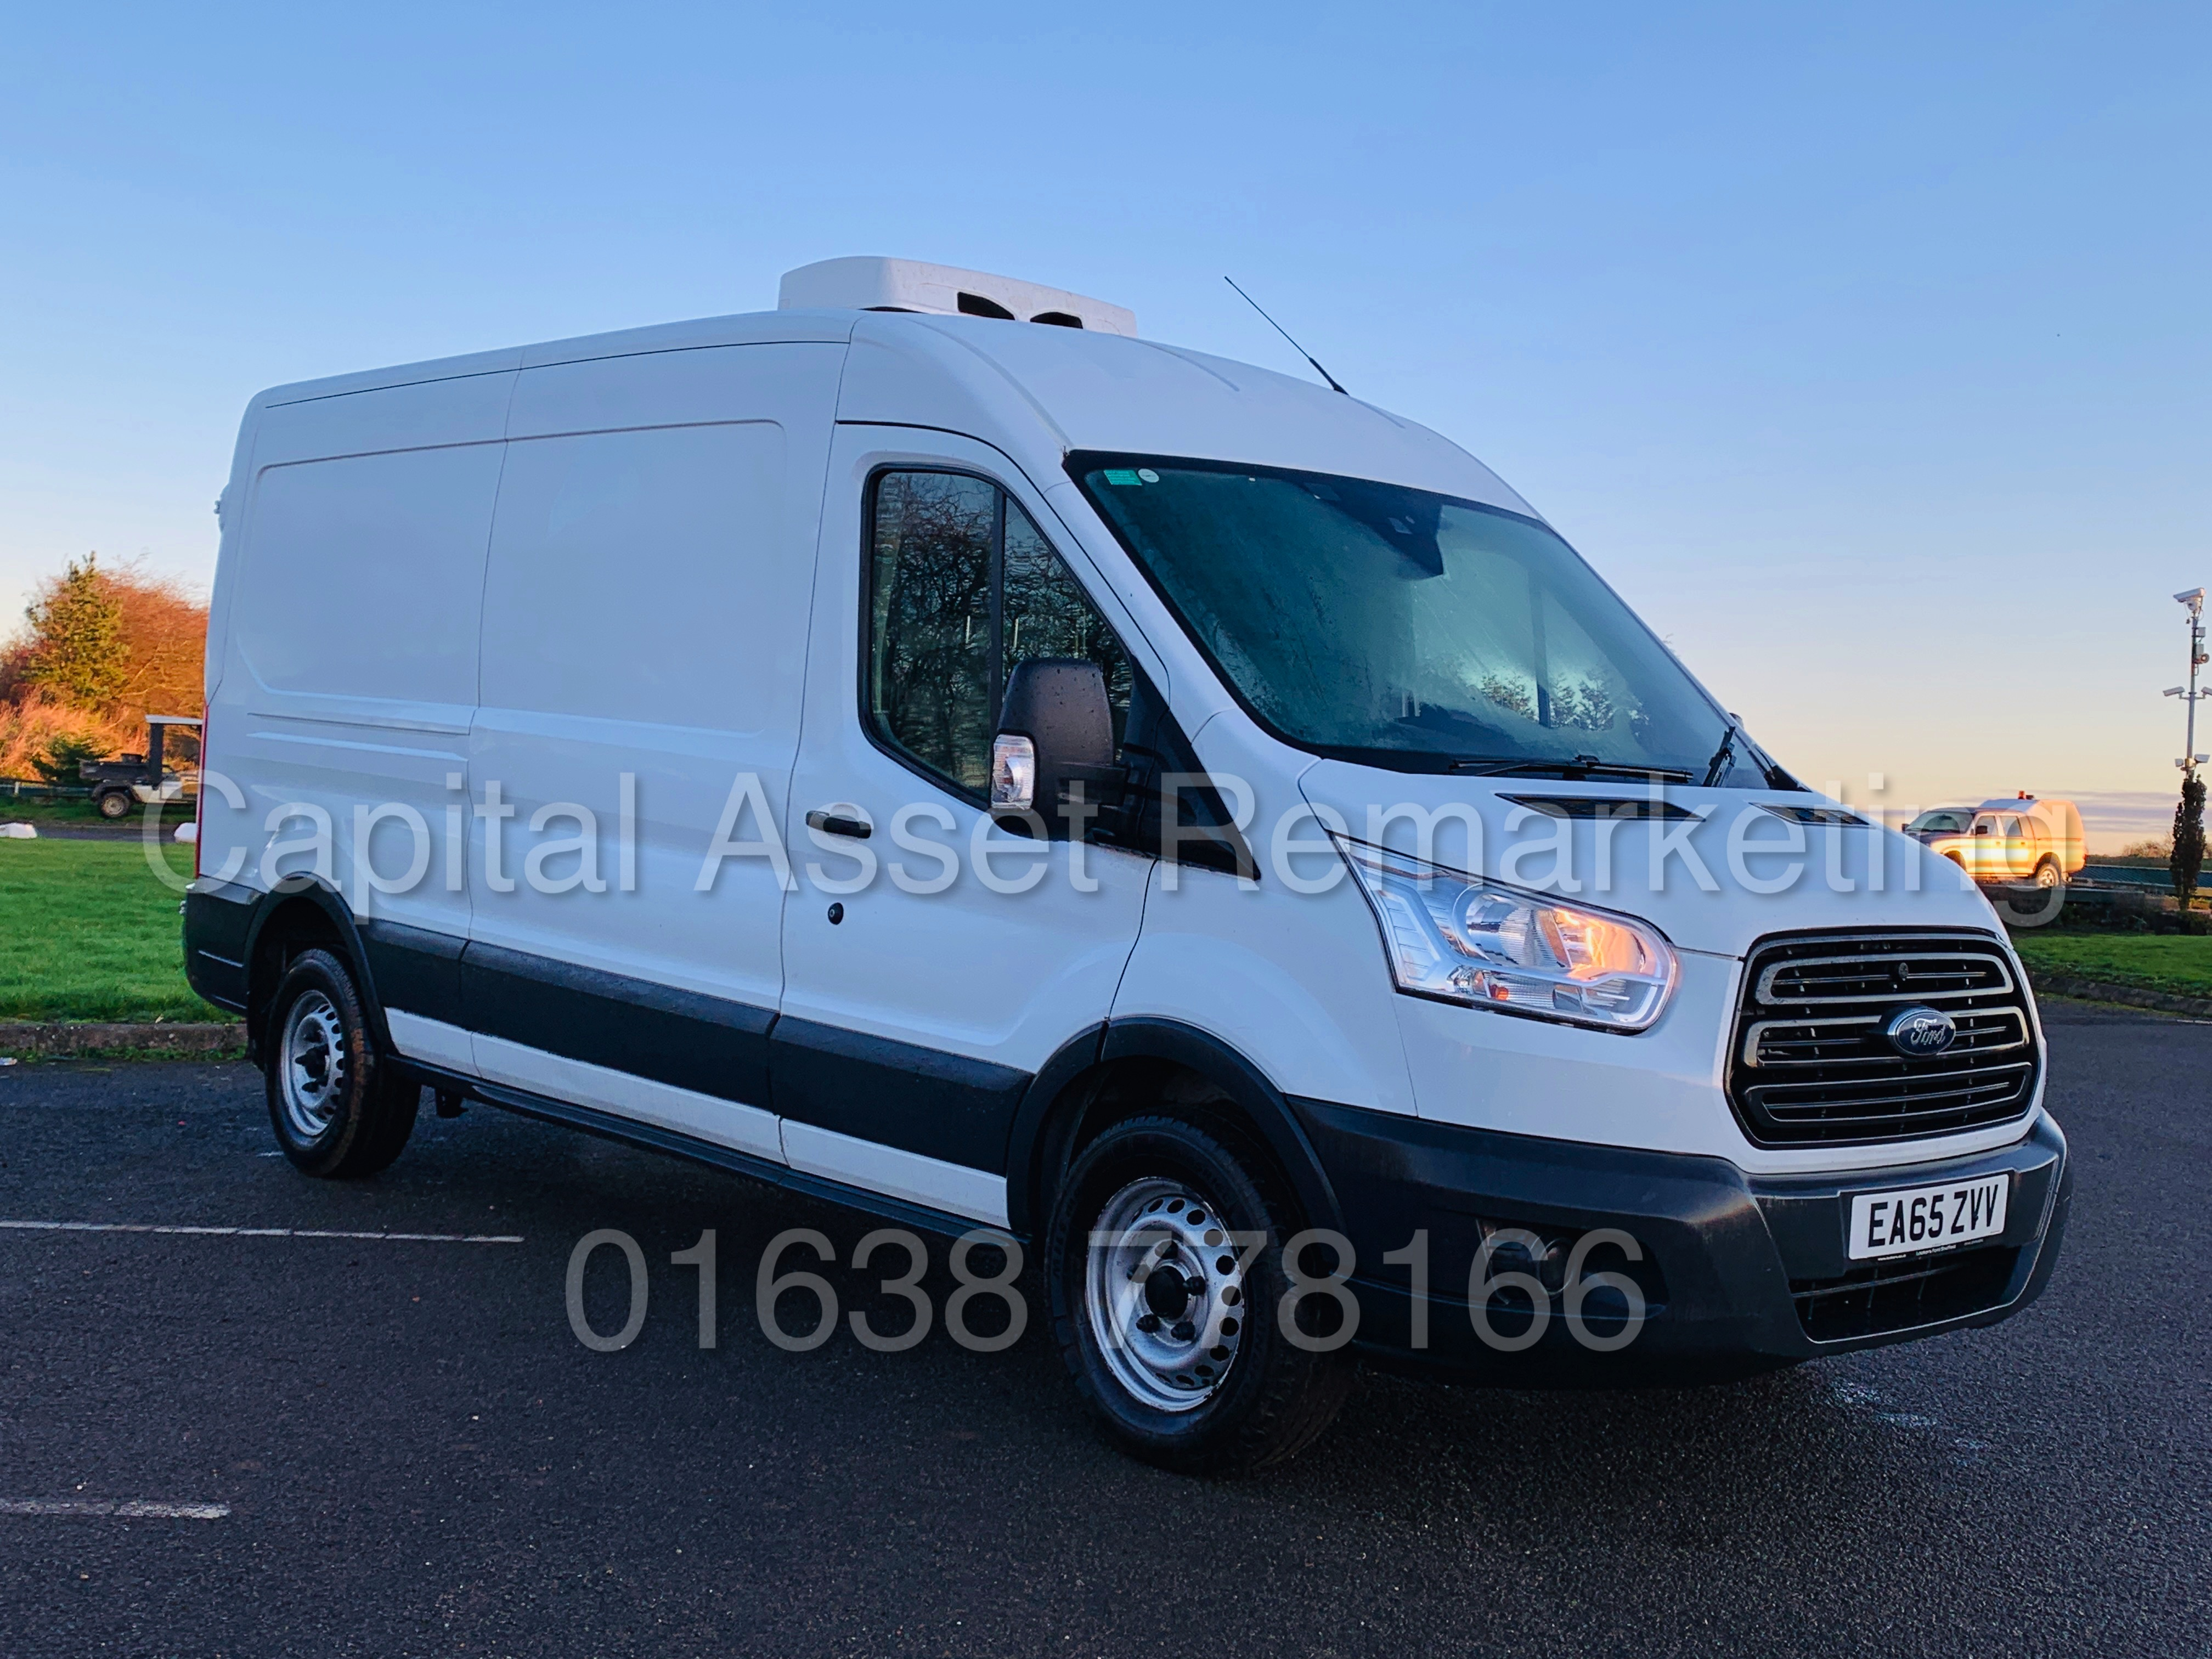 (On Sale) FORD TRANSIT T350 *LWB - REFRIGERATED VAN* (65 REG) '2.2 TDCI -125 BHP- 6 SPEED' (1 OWNER) - Image 3 of 43